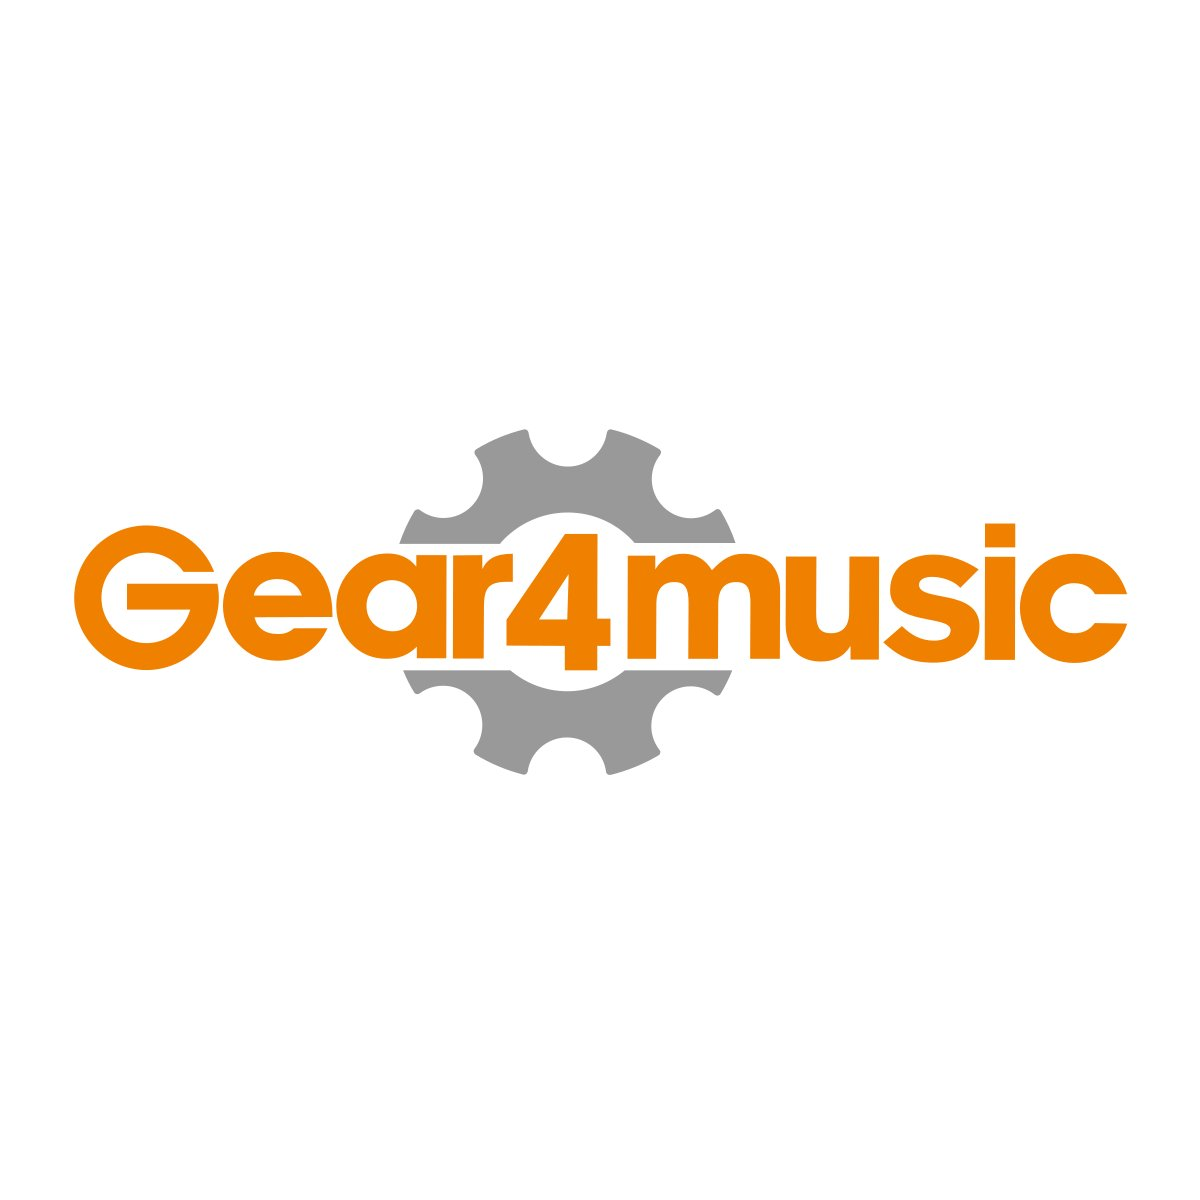 "16"" Marching / Orchestral Cymbals, by Gear4music"